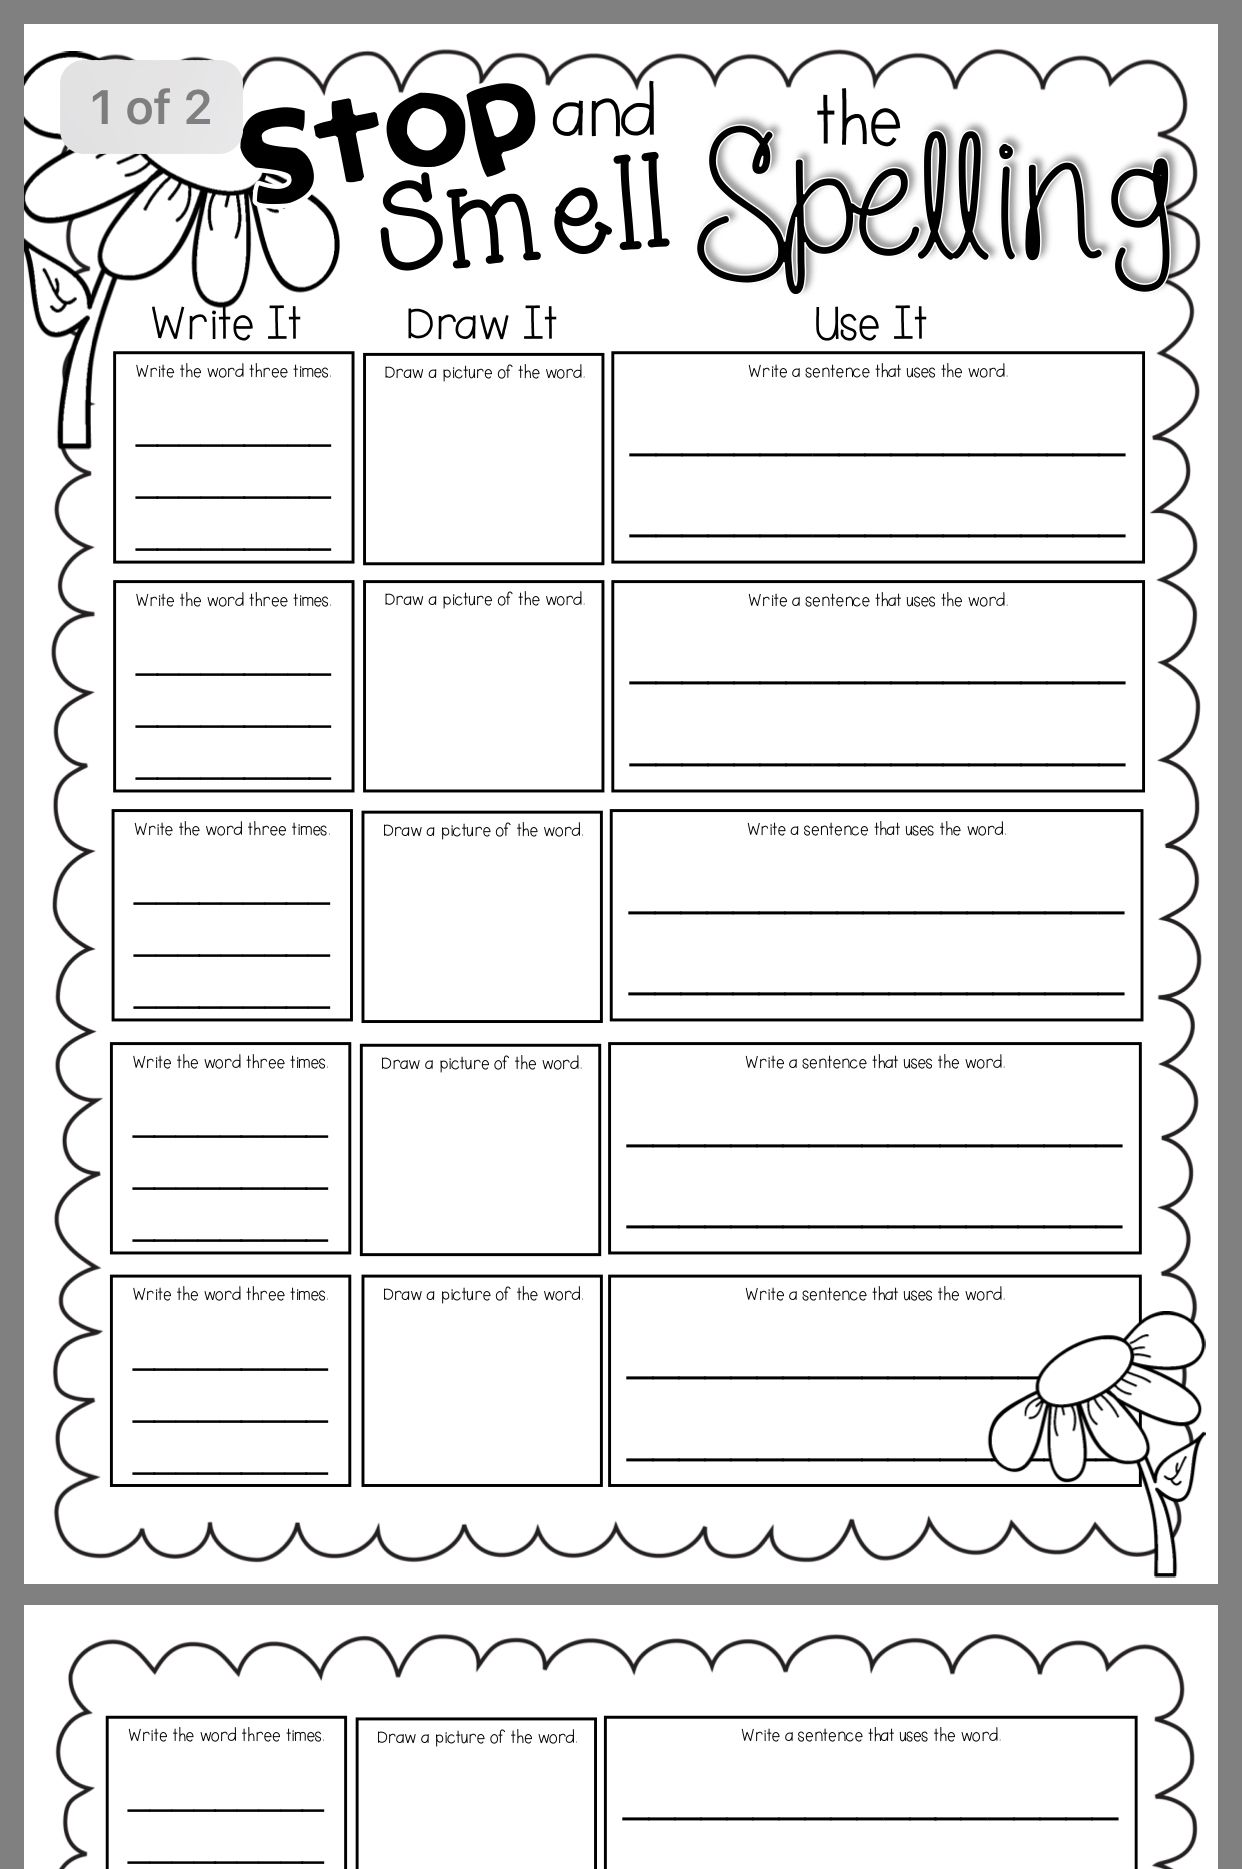 Worksheets Image By Rp